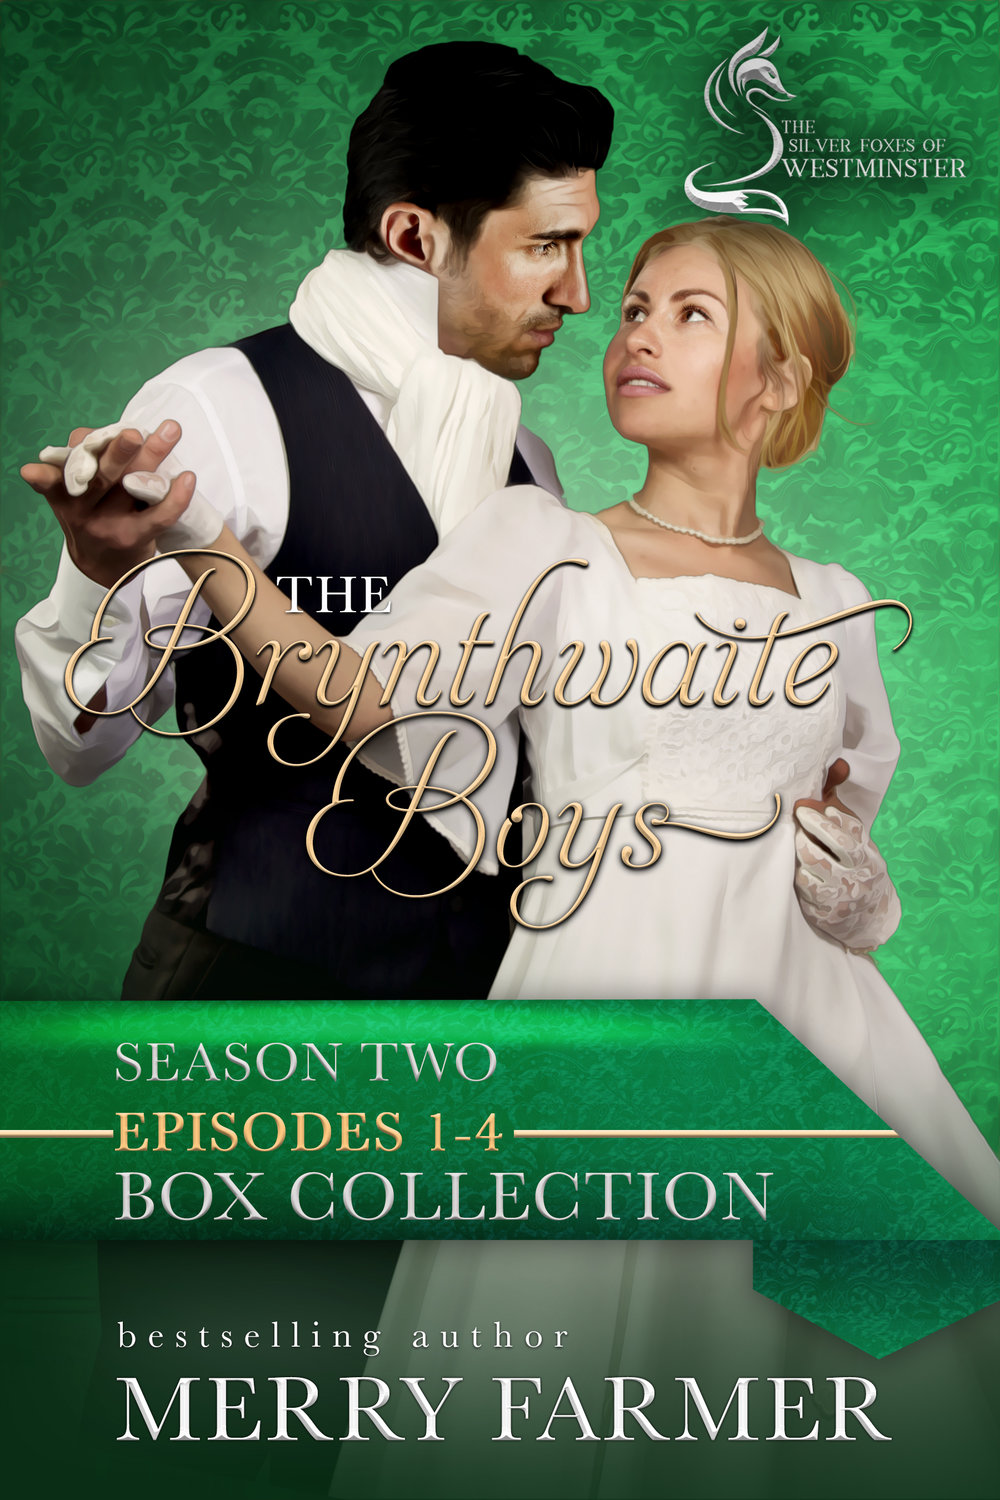 The Brynthwaite BoysSeason Two: Episodes 1-4 - Episode One – A New Day: Jason and Flossie attempt to navigate their deal with the Devil…also known as Lady Elizabeth Dyson, who proves to be more of a challenge than they expected. Lawrence has his hands full as Matty's troubled siblings turn his life upside down. Marshall gets what he's wanted all along, but will he and Alexandra have second thoughts?Episode Two – A String of Consequences: Marshall and Alexandra attempt to navigate their new life, but is their unfortunate patient, Winnie, as innocent as she seems? A chance encounter with a band of Romani leaves Lawrence questioning everything he knows about his past…and could give him the answers he's always craved. Lady E continues her shenanigans, but will her demands drive Jason back to his old ways, or can Flossie redeem him before it's too late?Episode Three – A Happy Discovery:Jason and Flossie are overjoyed when they receive the good news they've been hoping for, but how will Lady E feel about it? How will Alexandra cope when she receives the same news, and will it destroy her relationship with Marshall? Lawrence's anxiety about money take a backseat as news of a murder reaches him and Matty.Episode Four – A Parting of Ways: The Christmas season brings more worry than joy as Marshall and Jason prepare to depart for London. Flossie receives a letter that may mean more trouble in the New Year. Alexandra too receives a letter that could change everything, including her heart. Matty and Lawrence discover, to their horror, that they aren't as safe from the past as they hoped they were.PLEASE BE ADVISED: Some episodes contain steamy, steamy content!